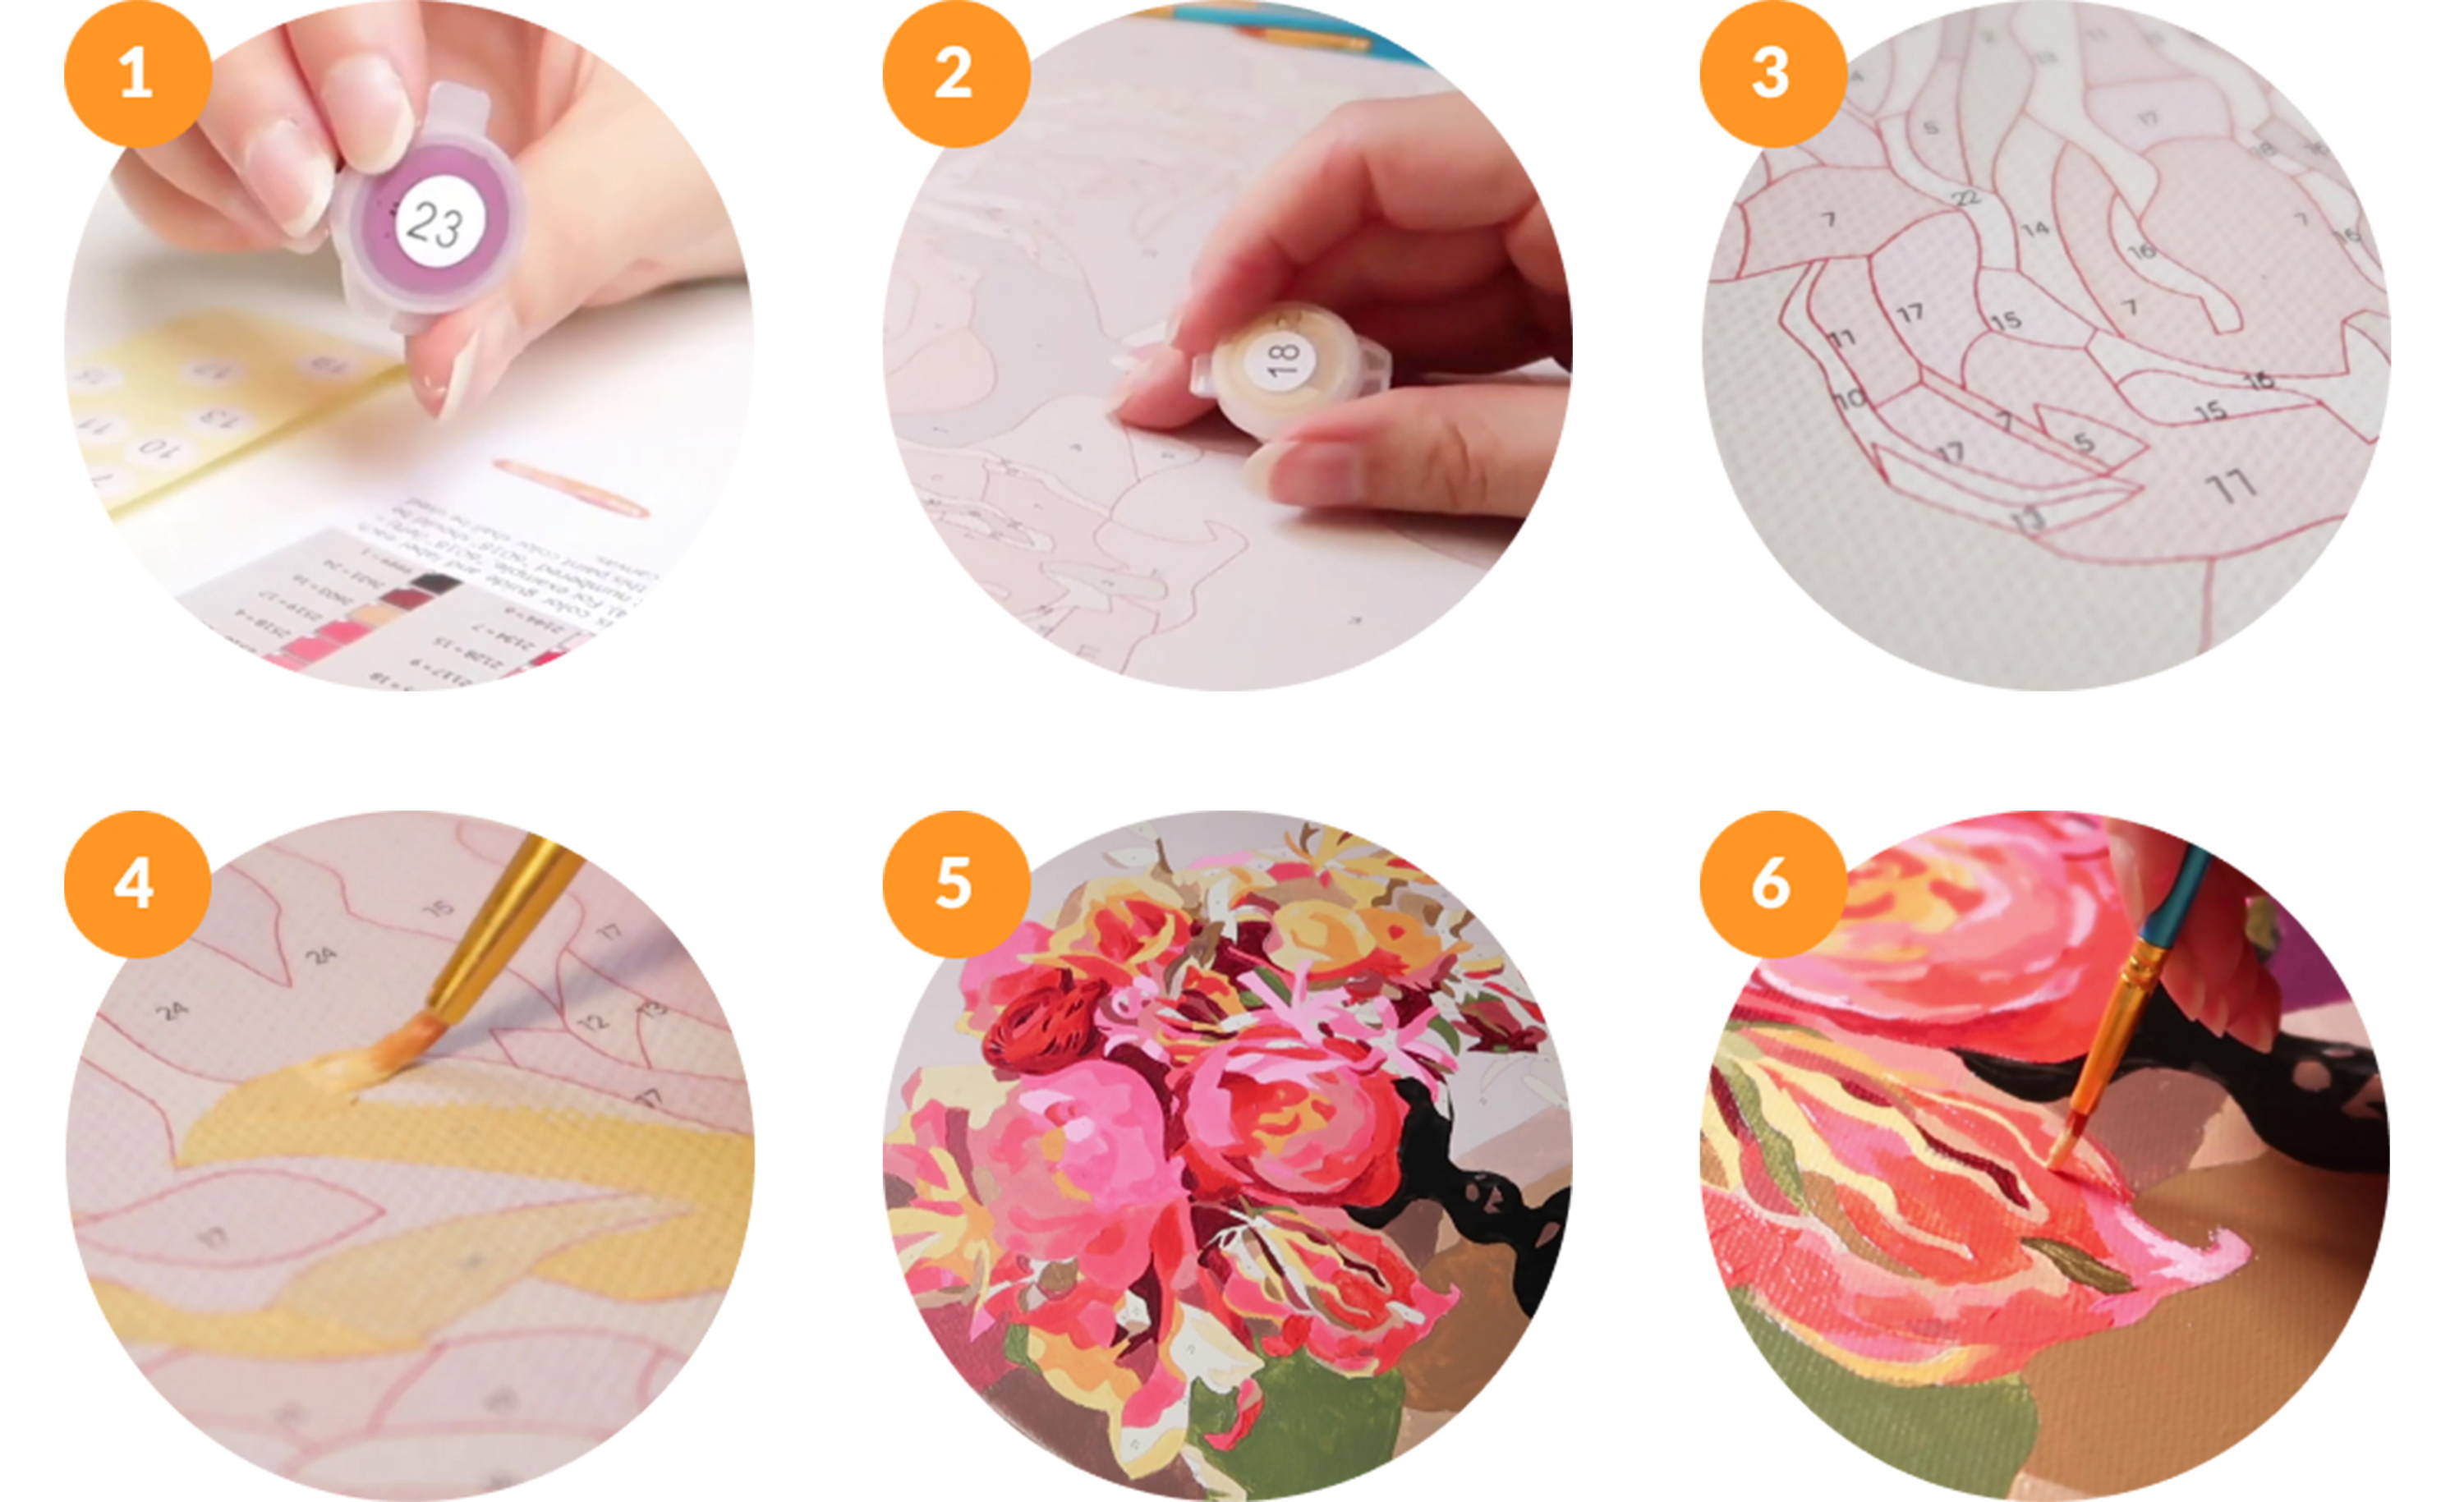 Paint by Numbers Step by Step